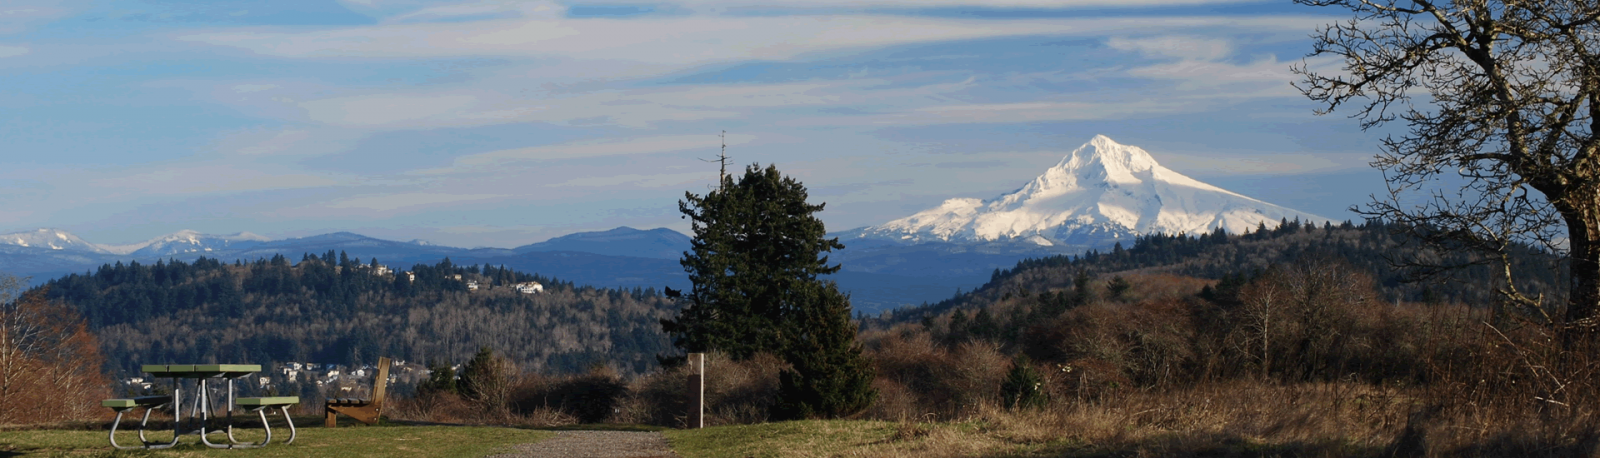 Powell Butte, OR